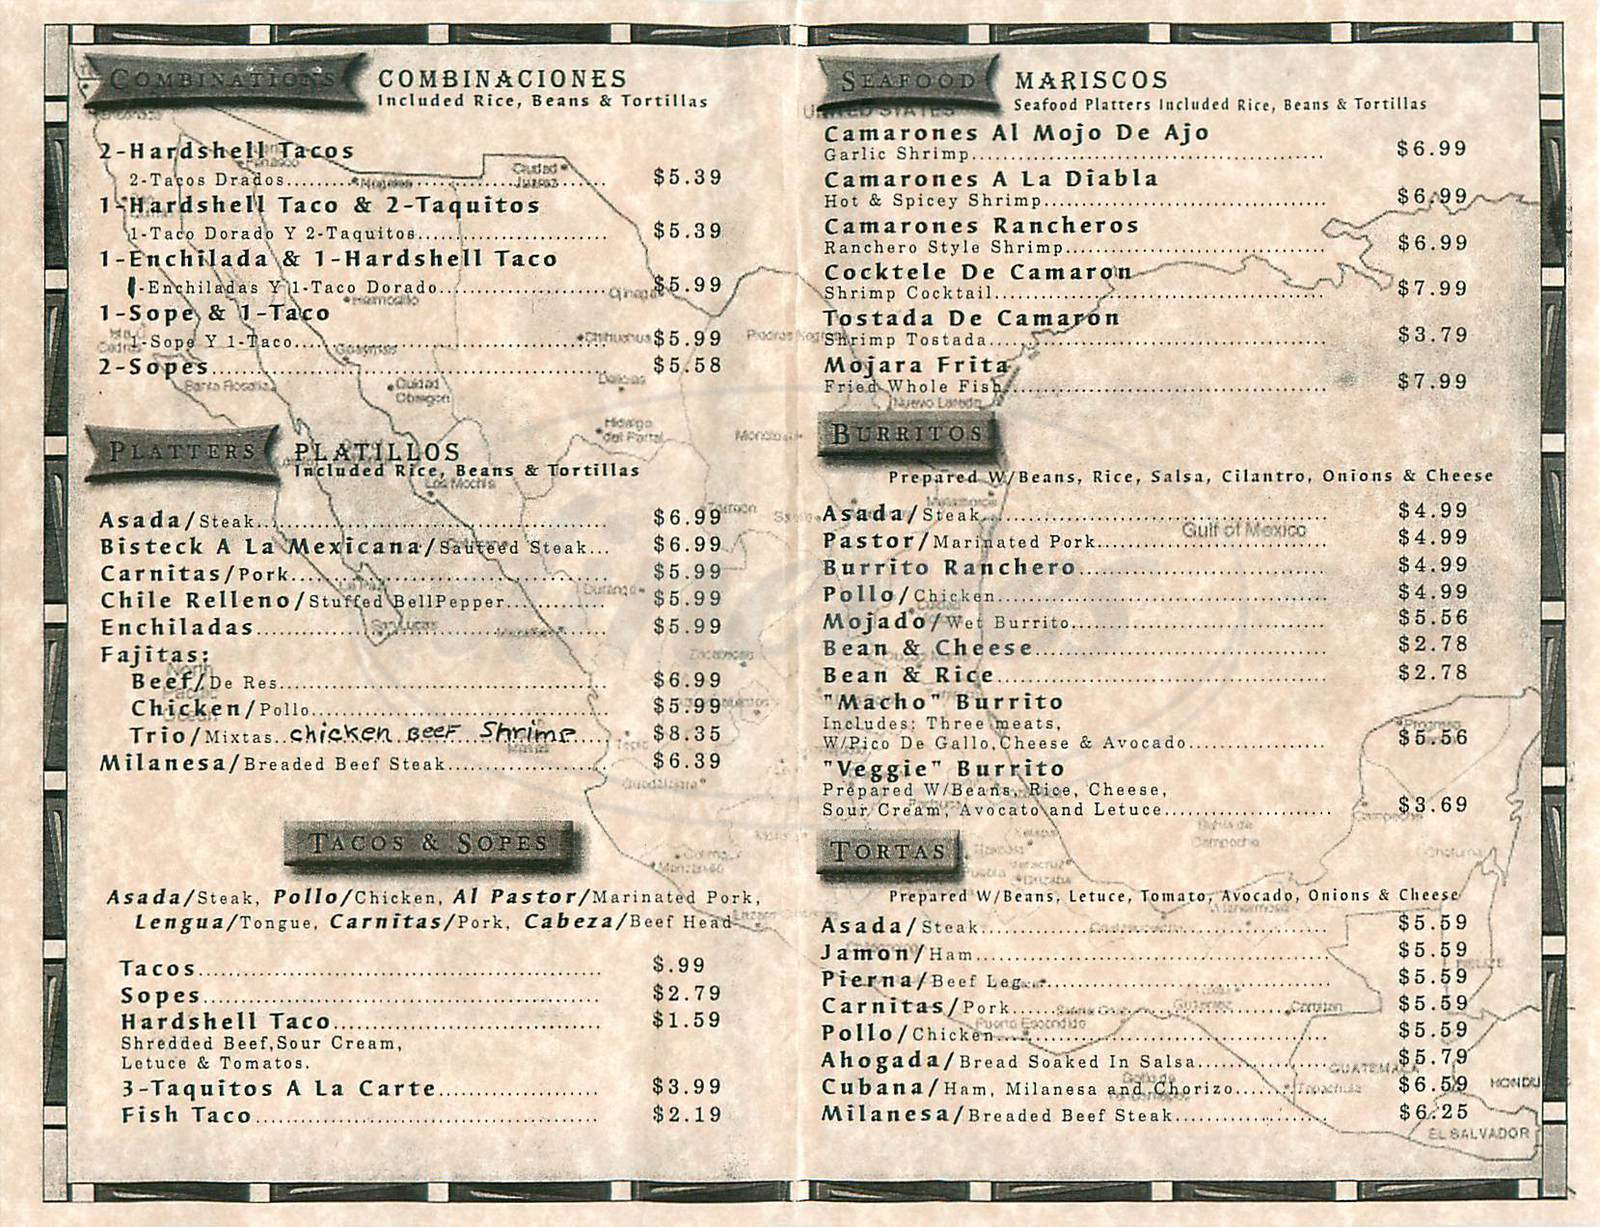 menu for Taqueria Camacho's